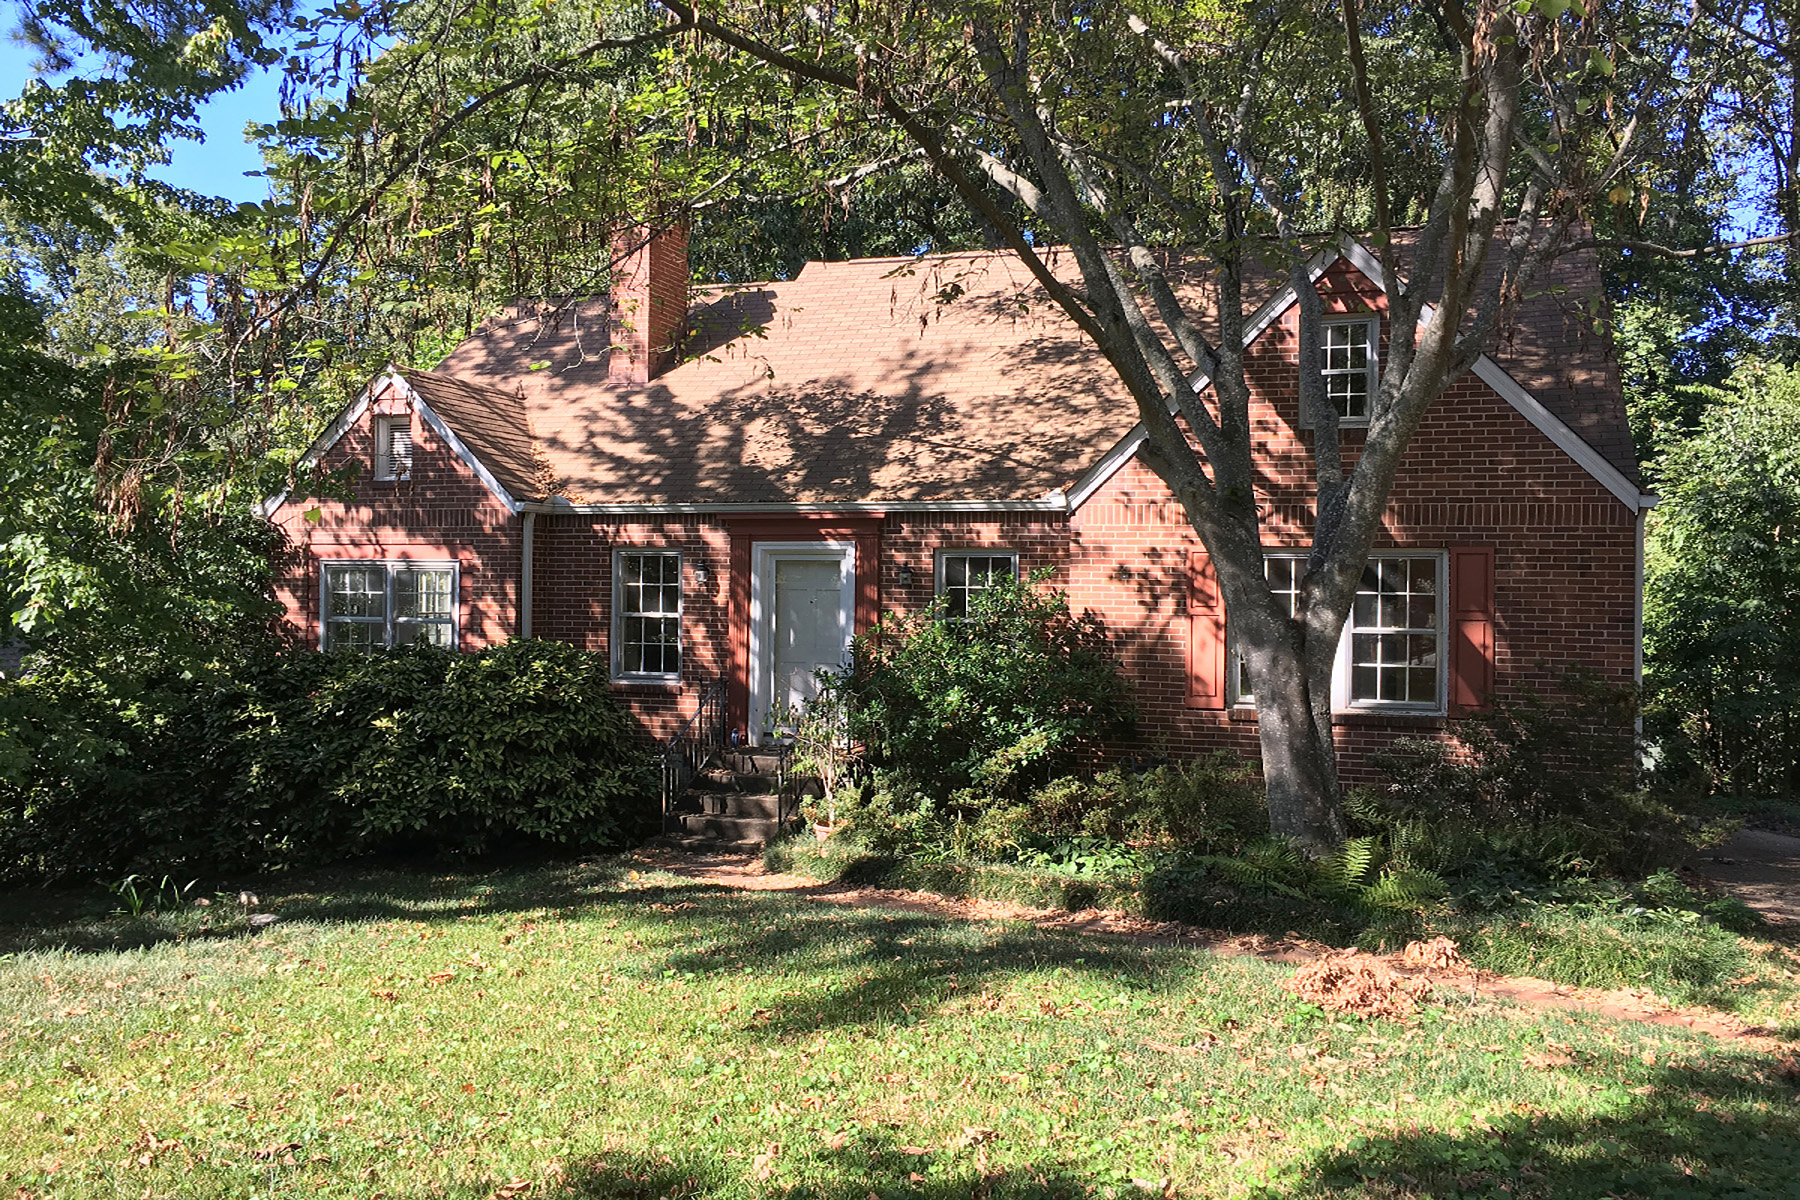 Single Family Home for Rent at Amazing Opportunity to Live in the Very Heart of Coveted Glenwood Estates 405 Glenn Circle Decatur, Georgia 30030 United States